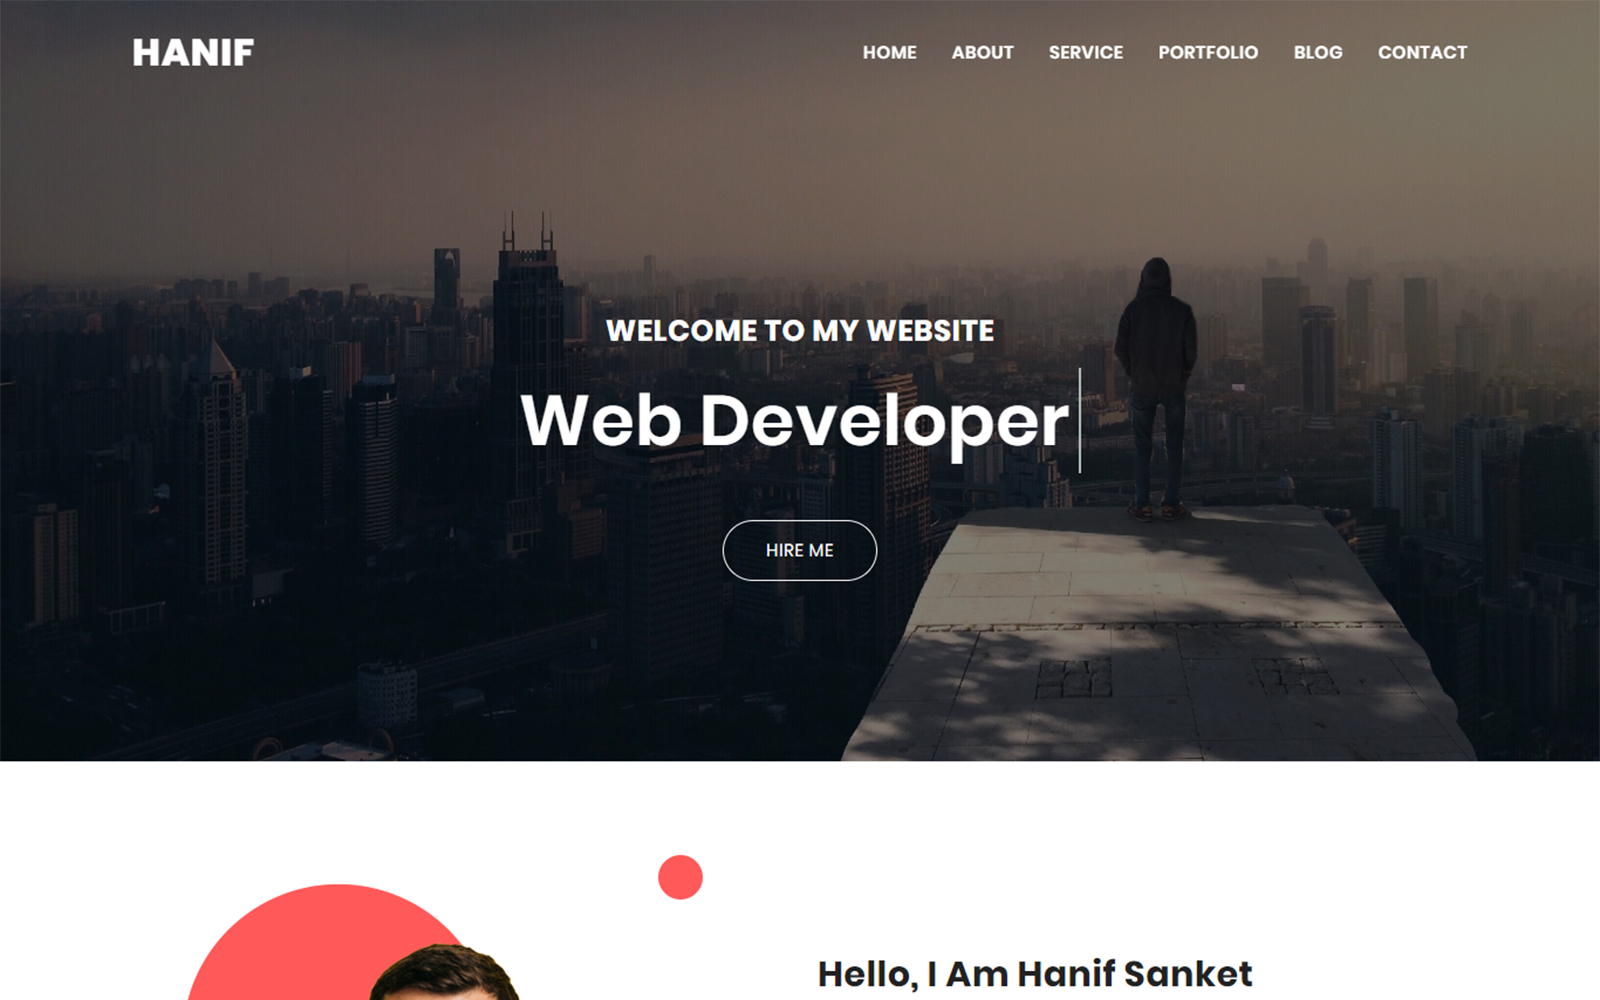 Hanif Personal Portfolio Landing Page Template